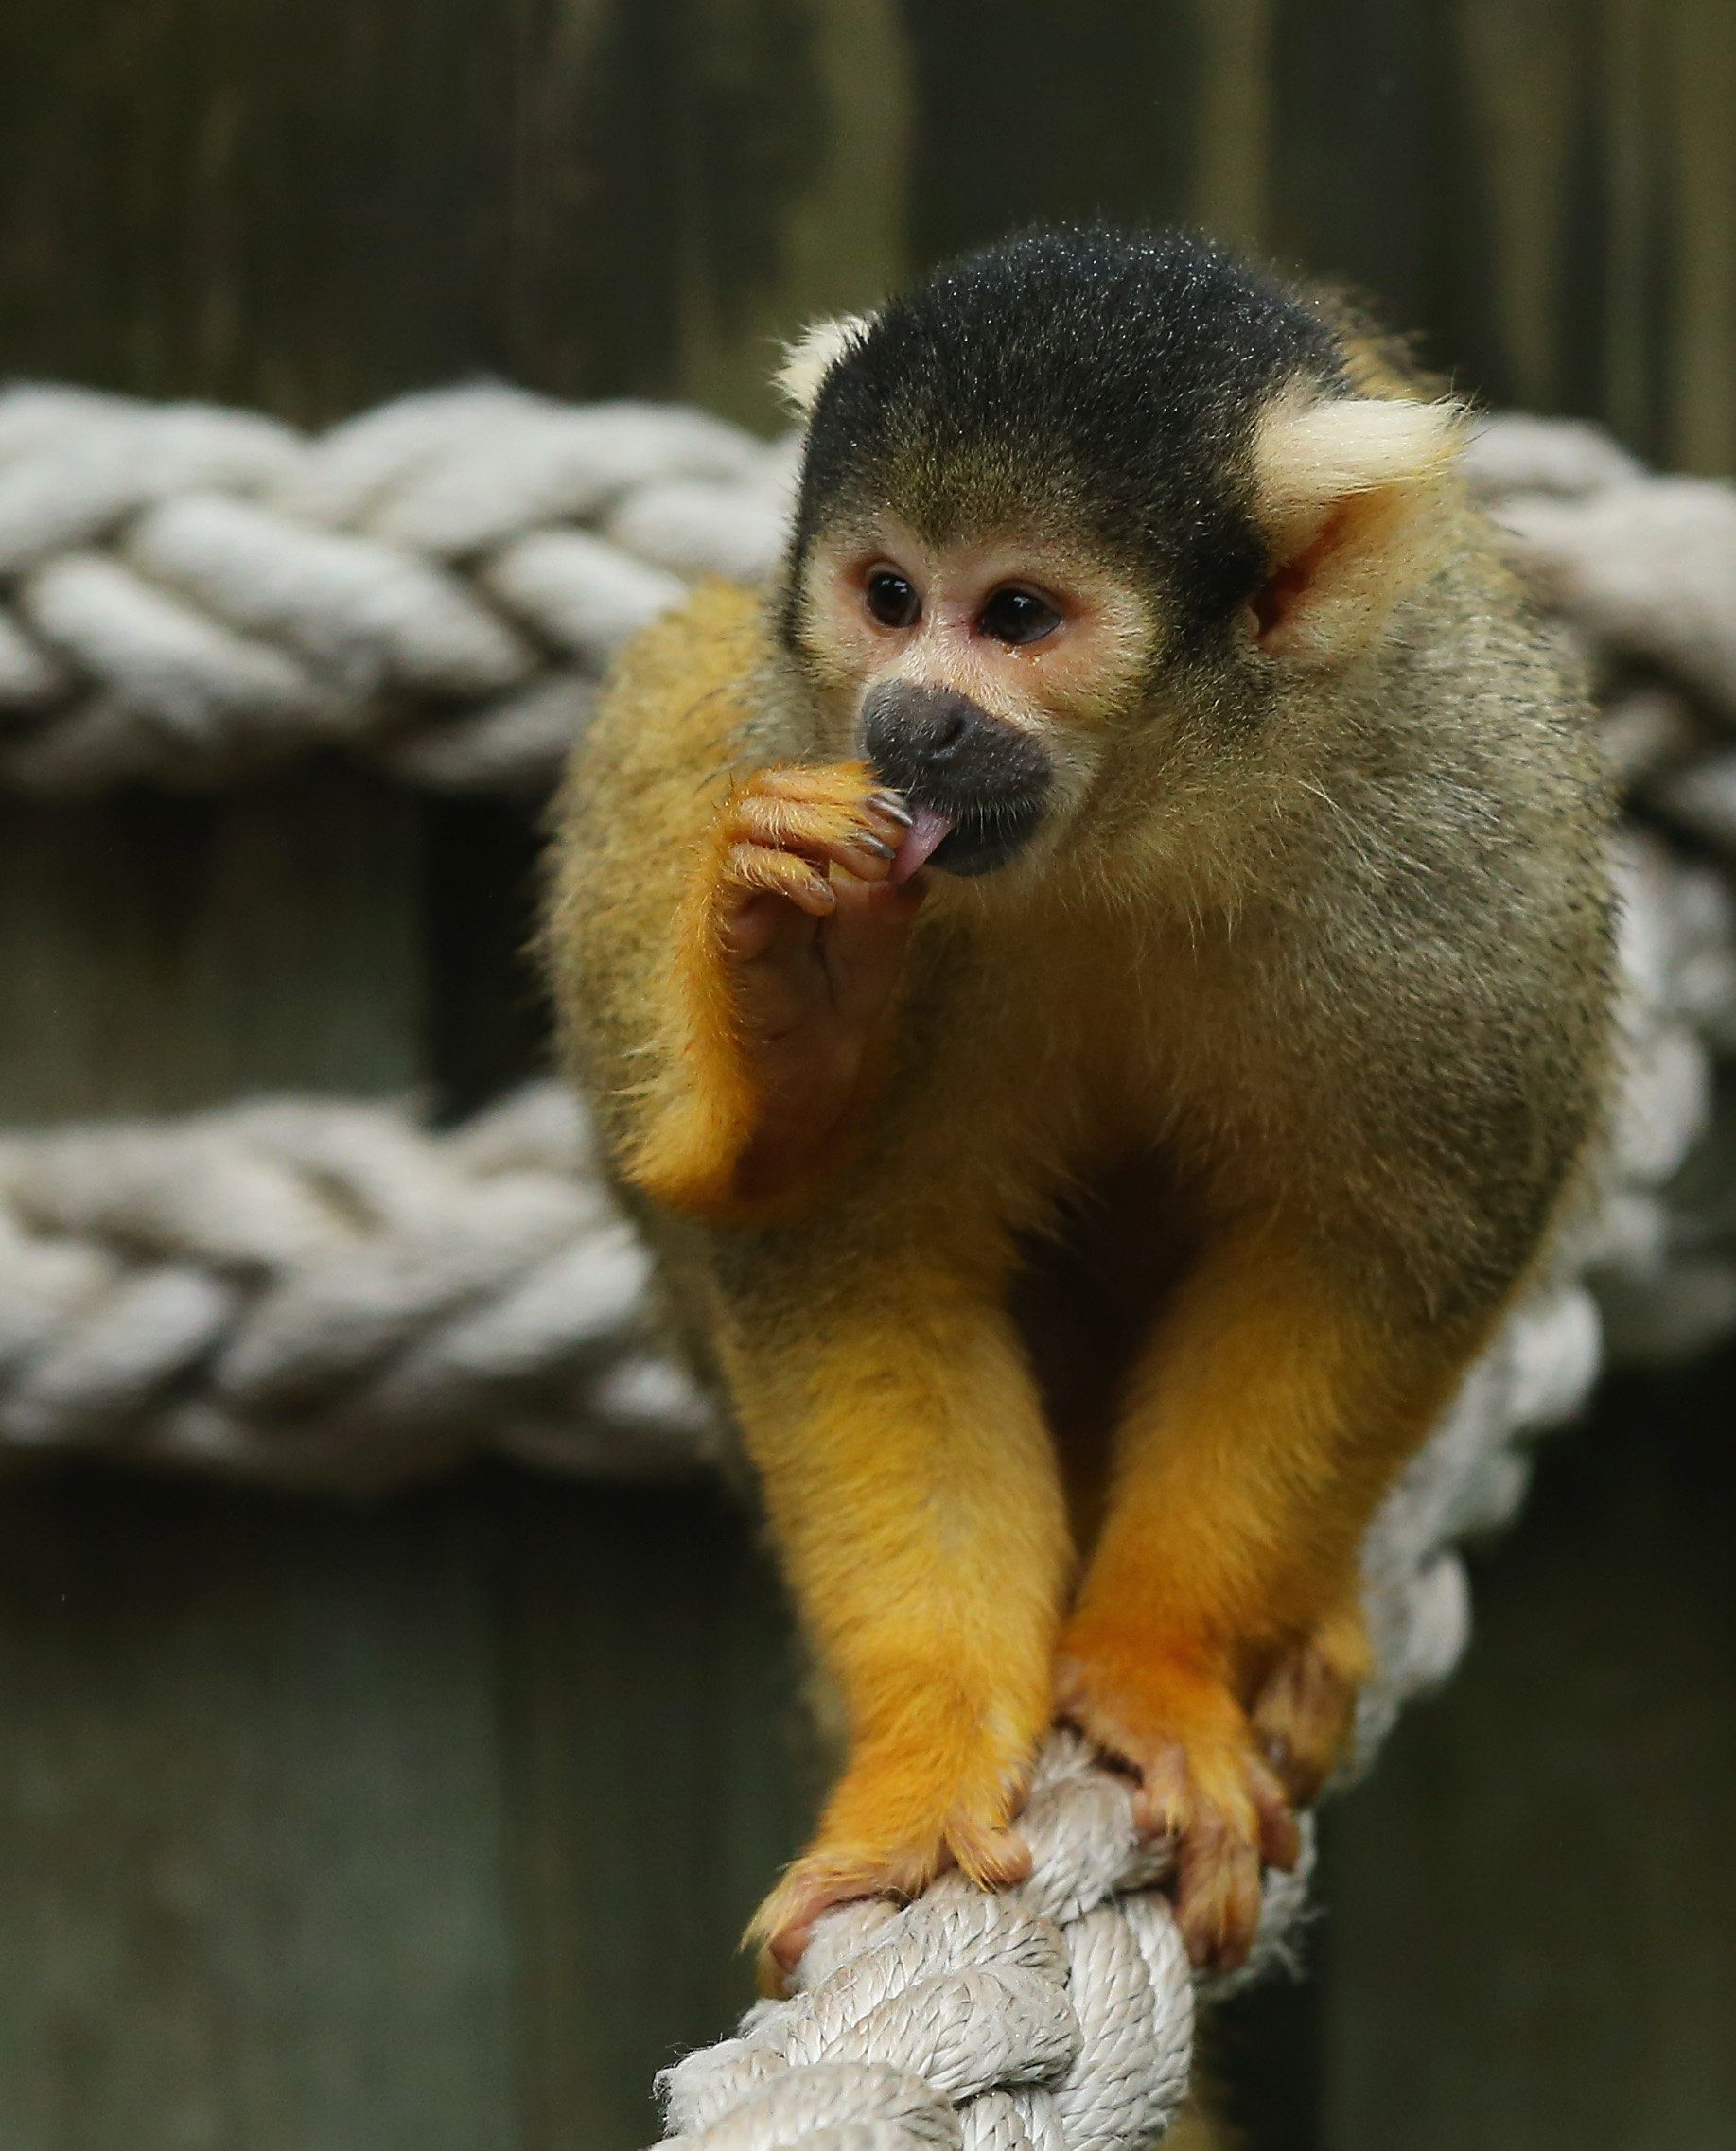 A squirrel monkey at the Taronga Zoo in Sydney, Australia.